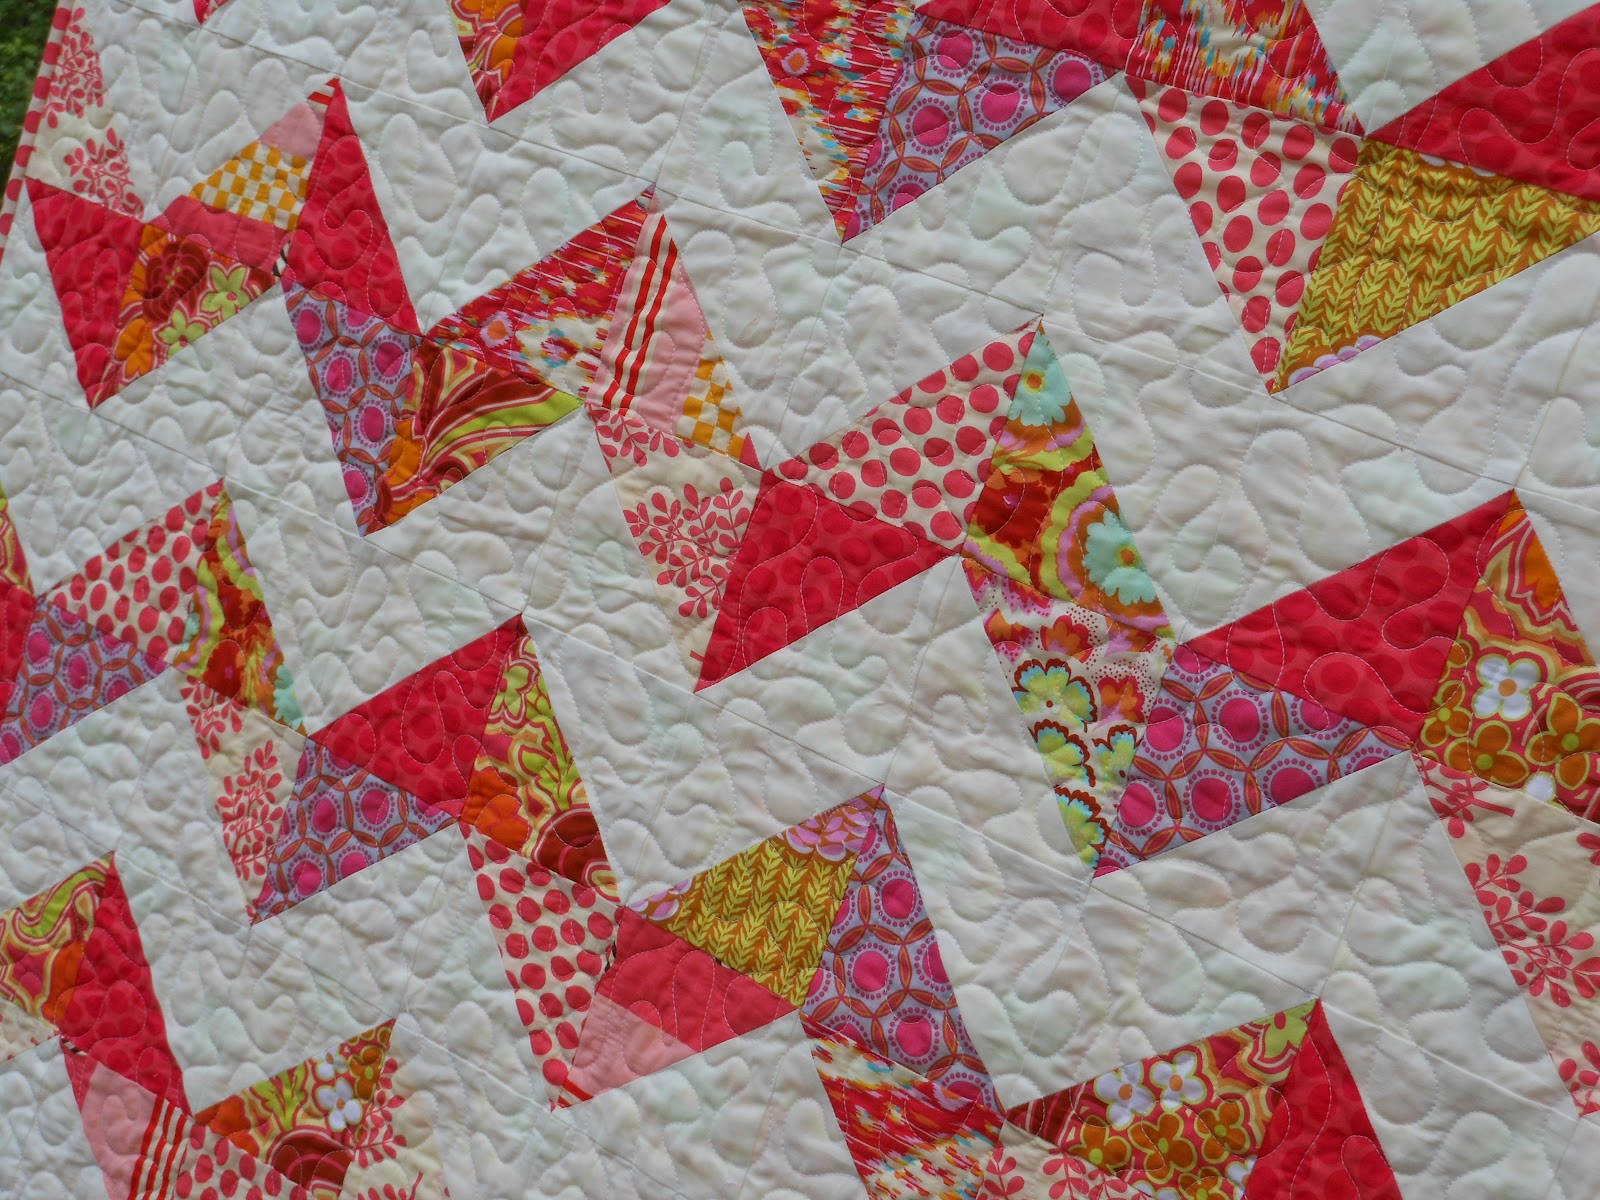 must admit that when I first started putting the original quilt ...